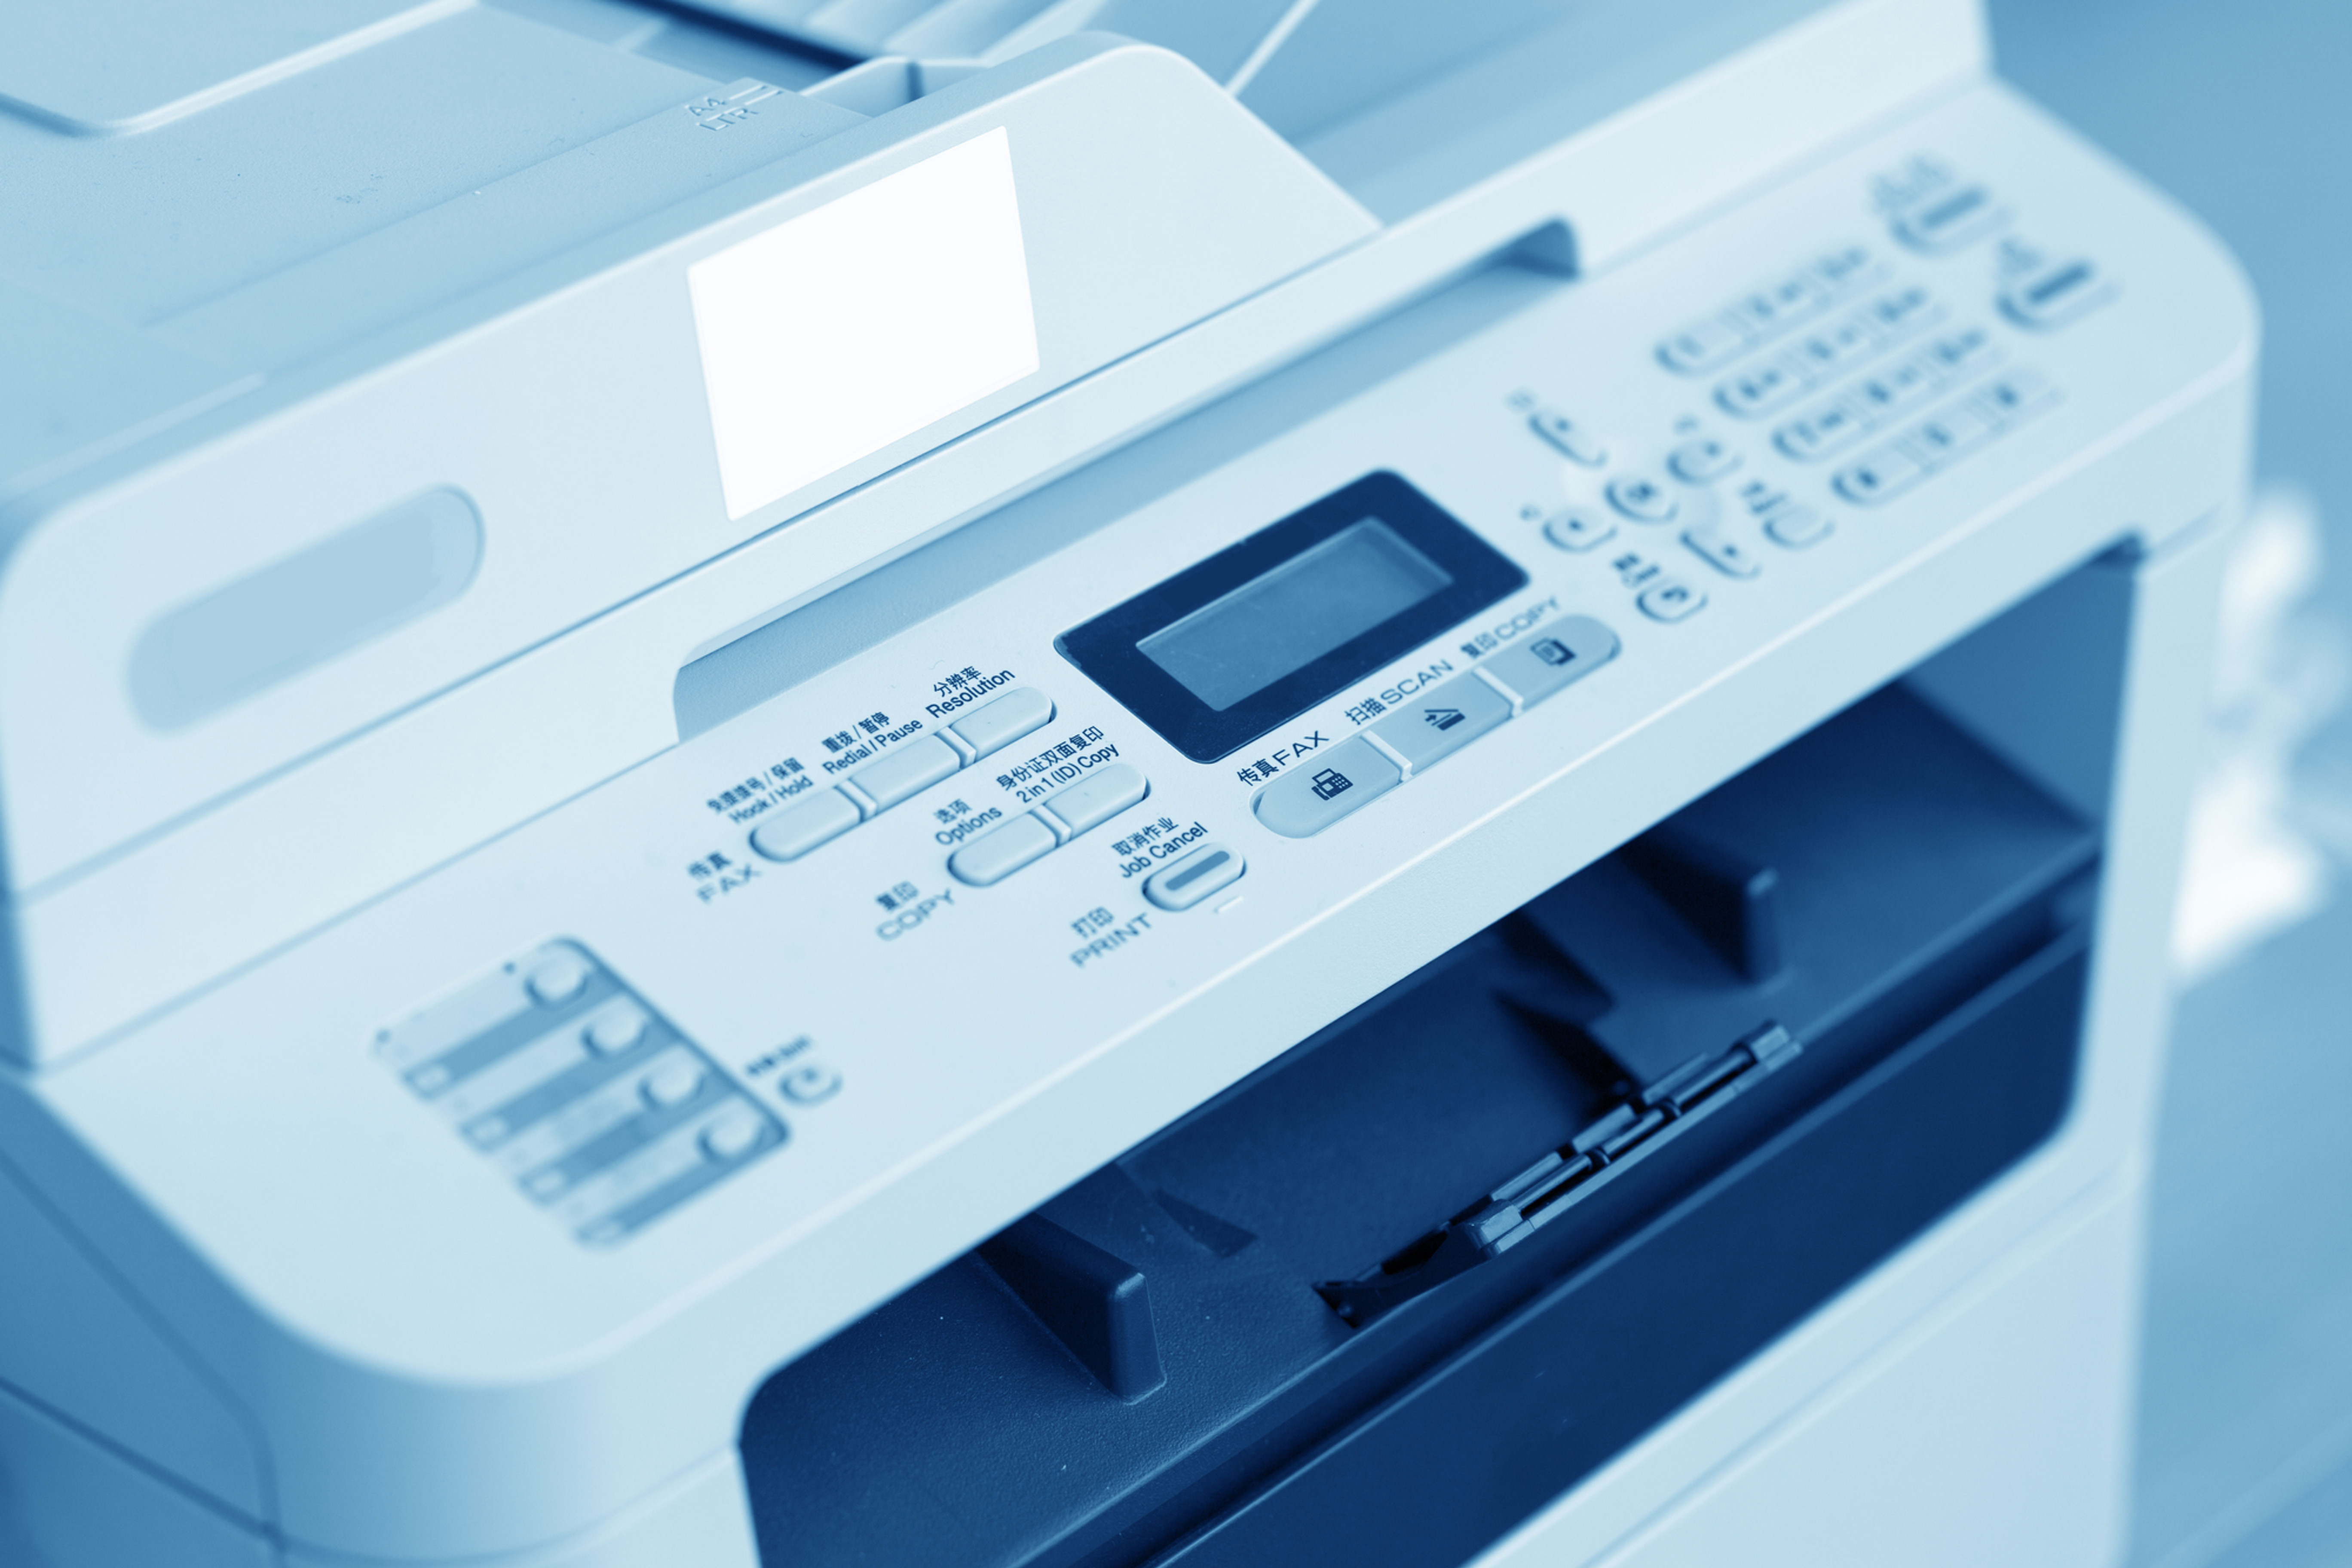 Printer Support and Troubleshooting